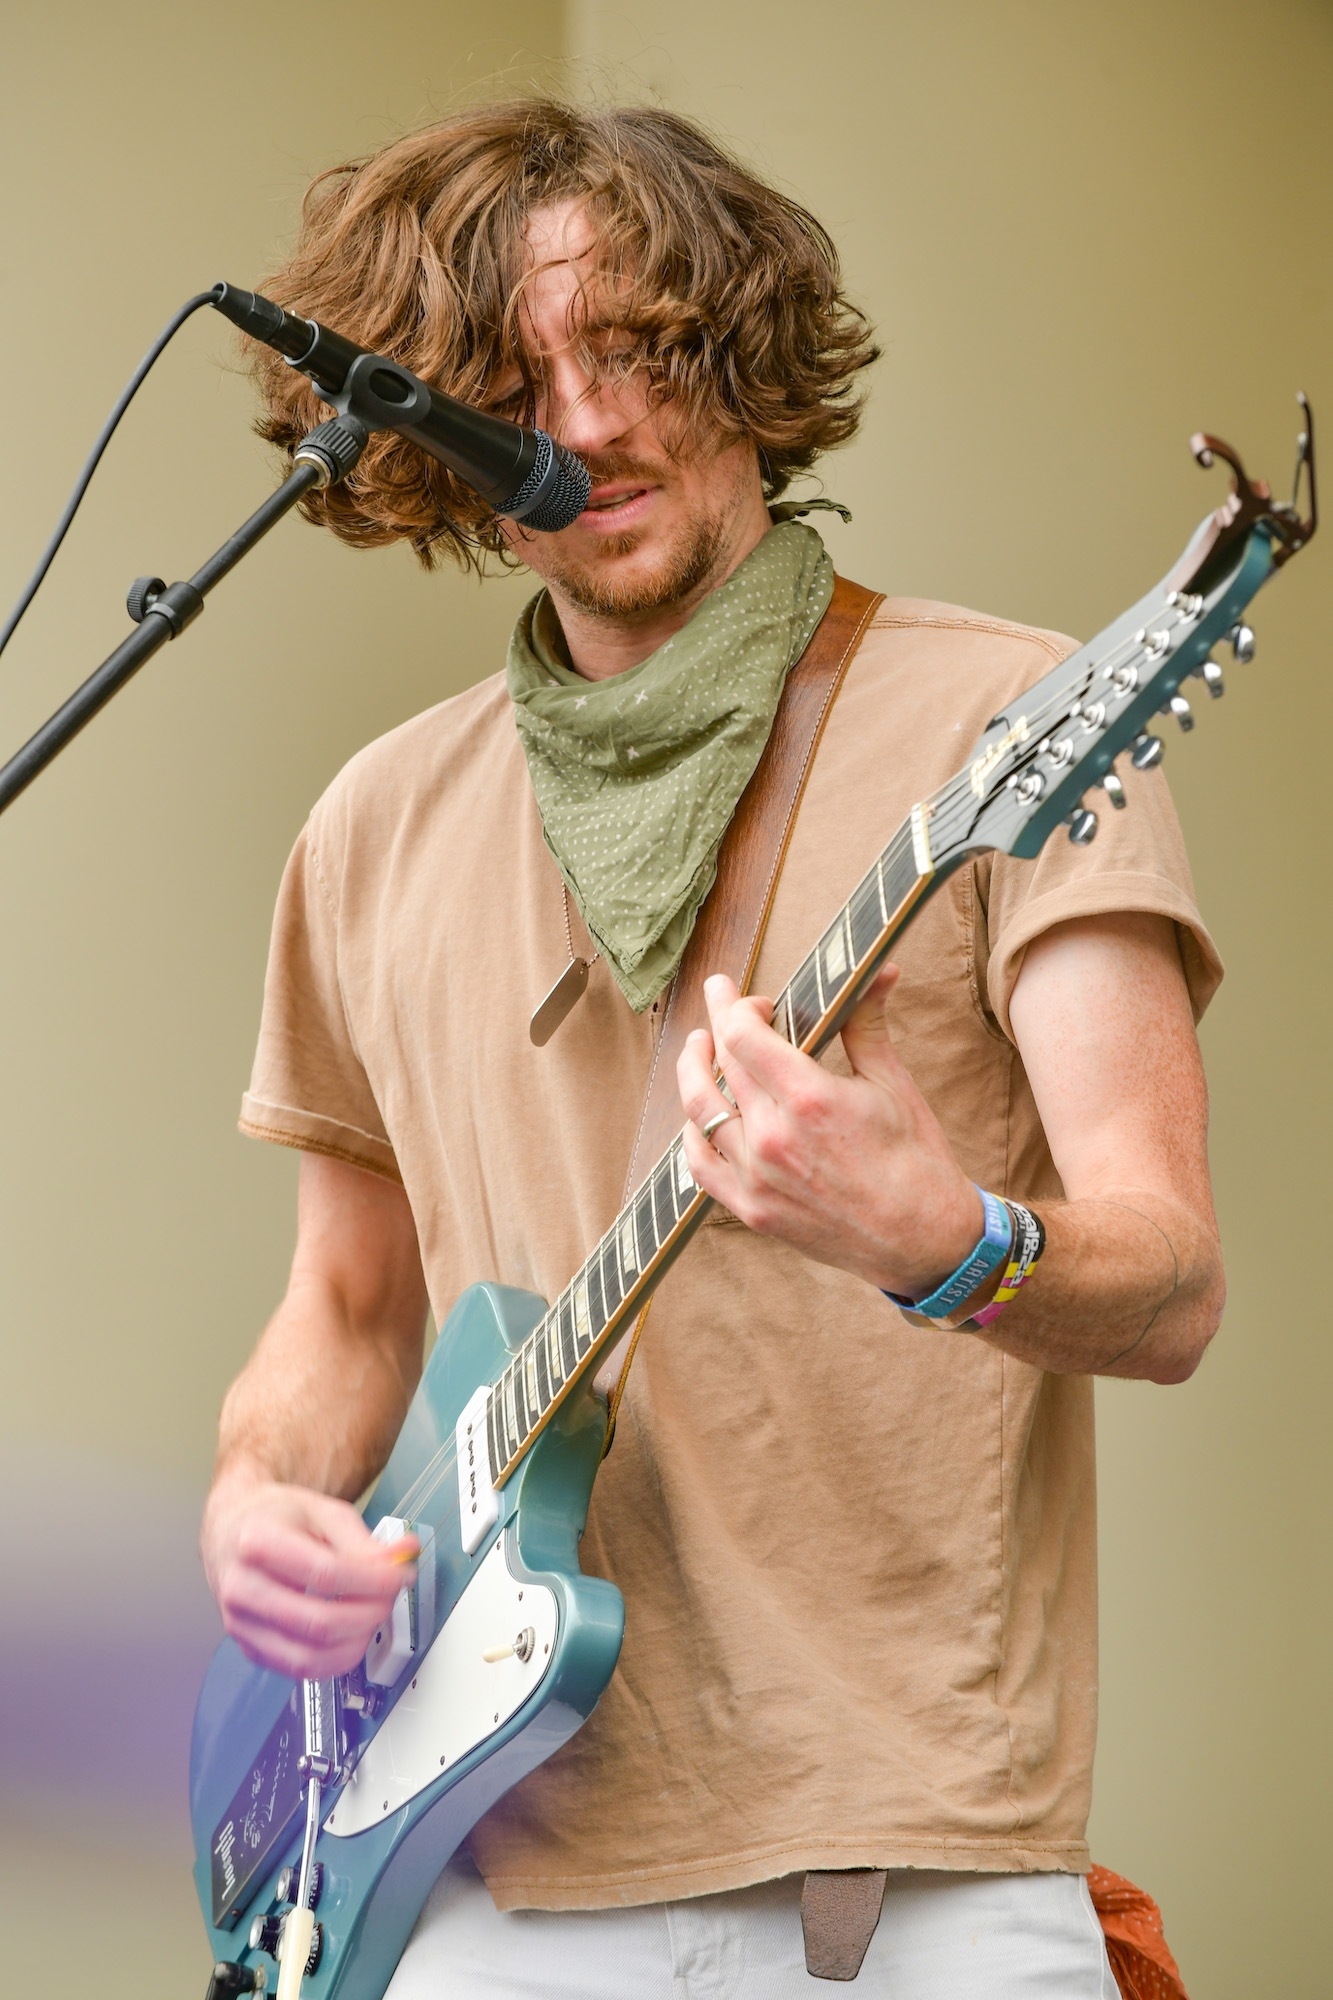 Black Pistol Fire Live at Lollapalooza [GALLERY] 5